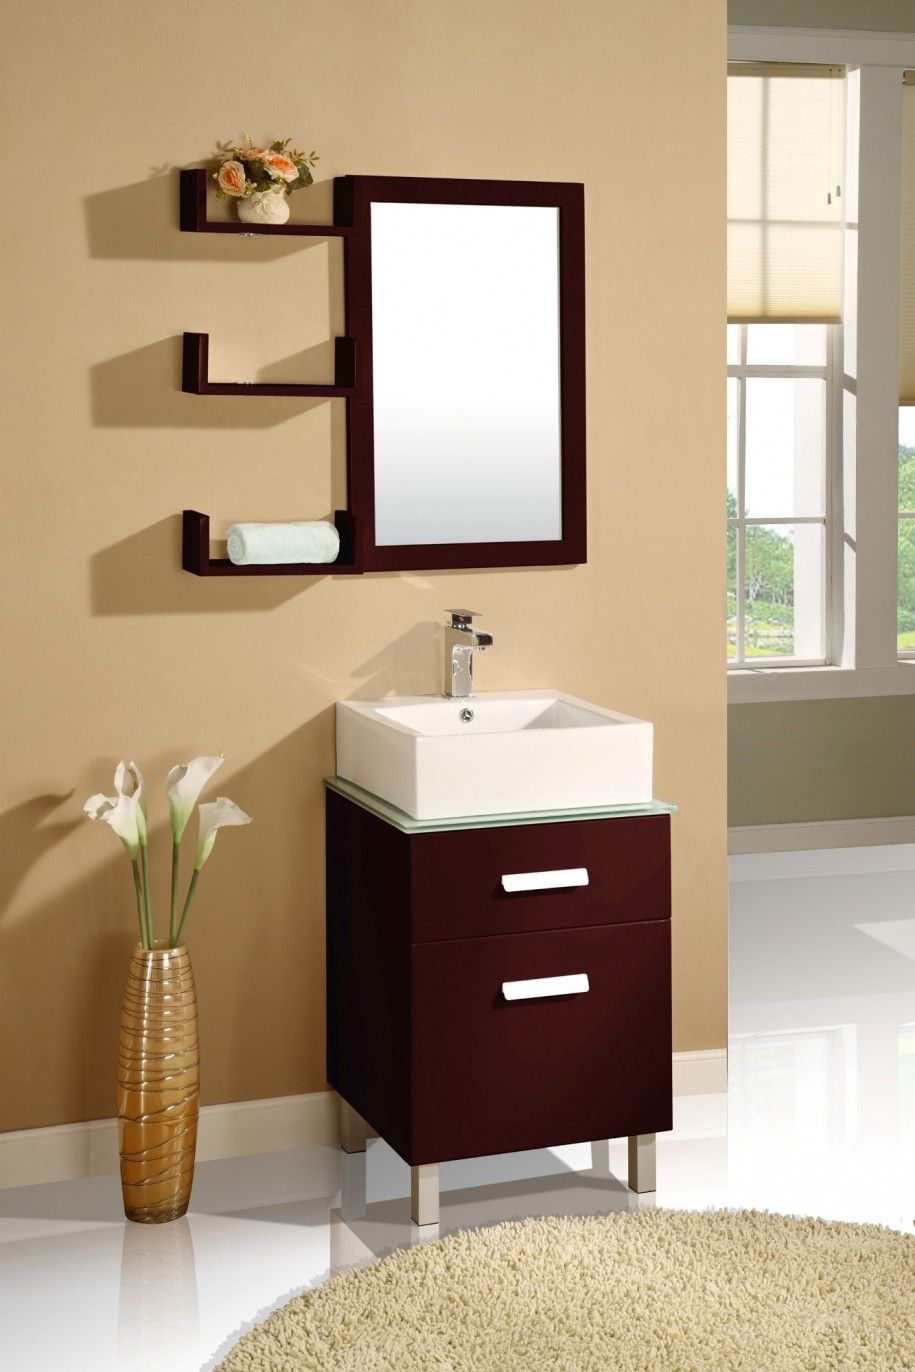 Simple Dark Wood Bathroom Mirrors with Shelves and Small Dark Wood